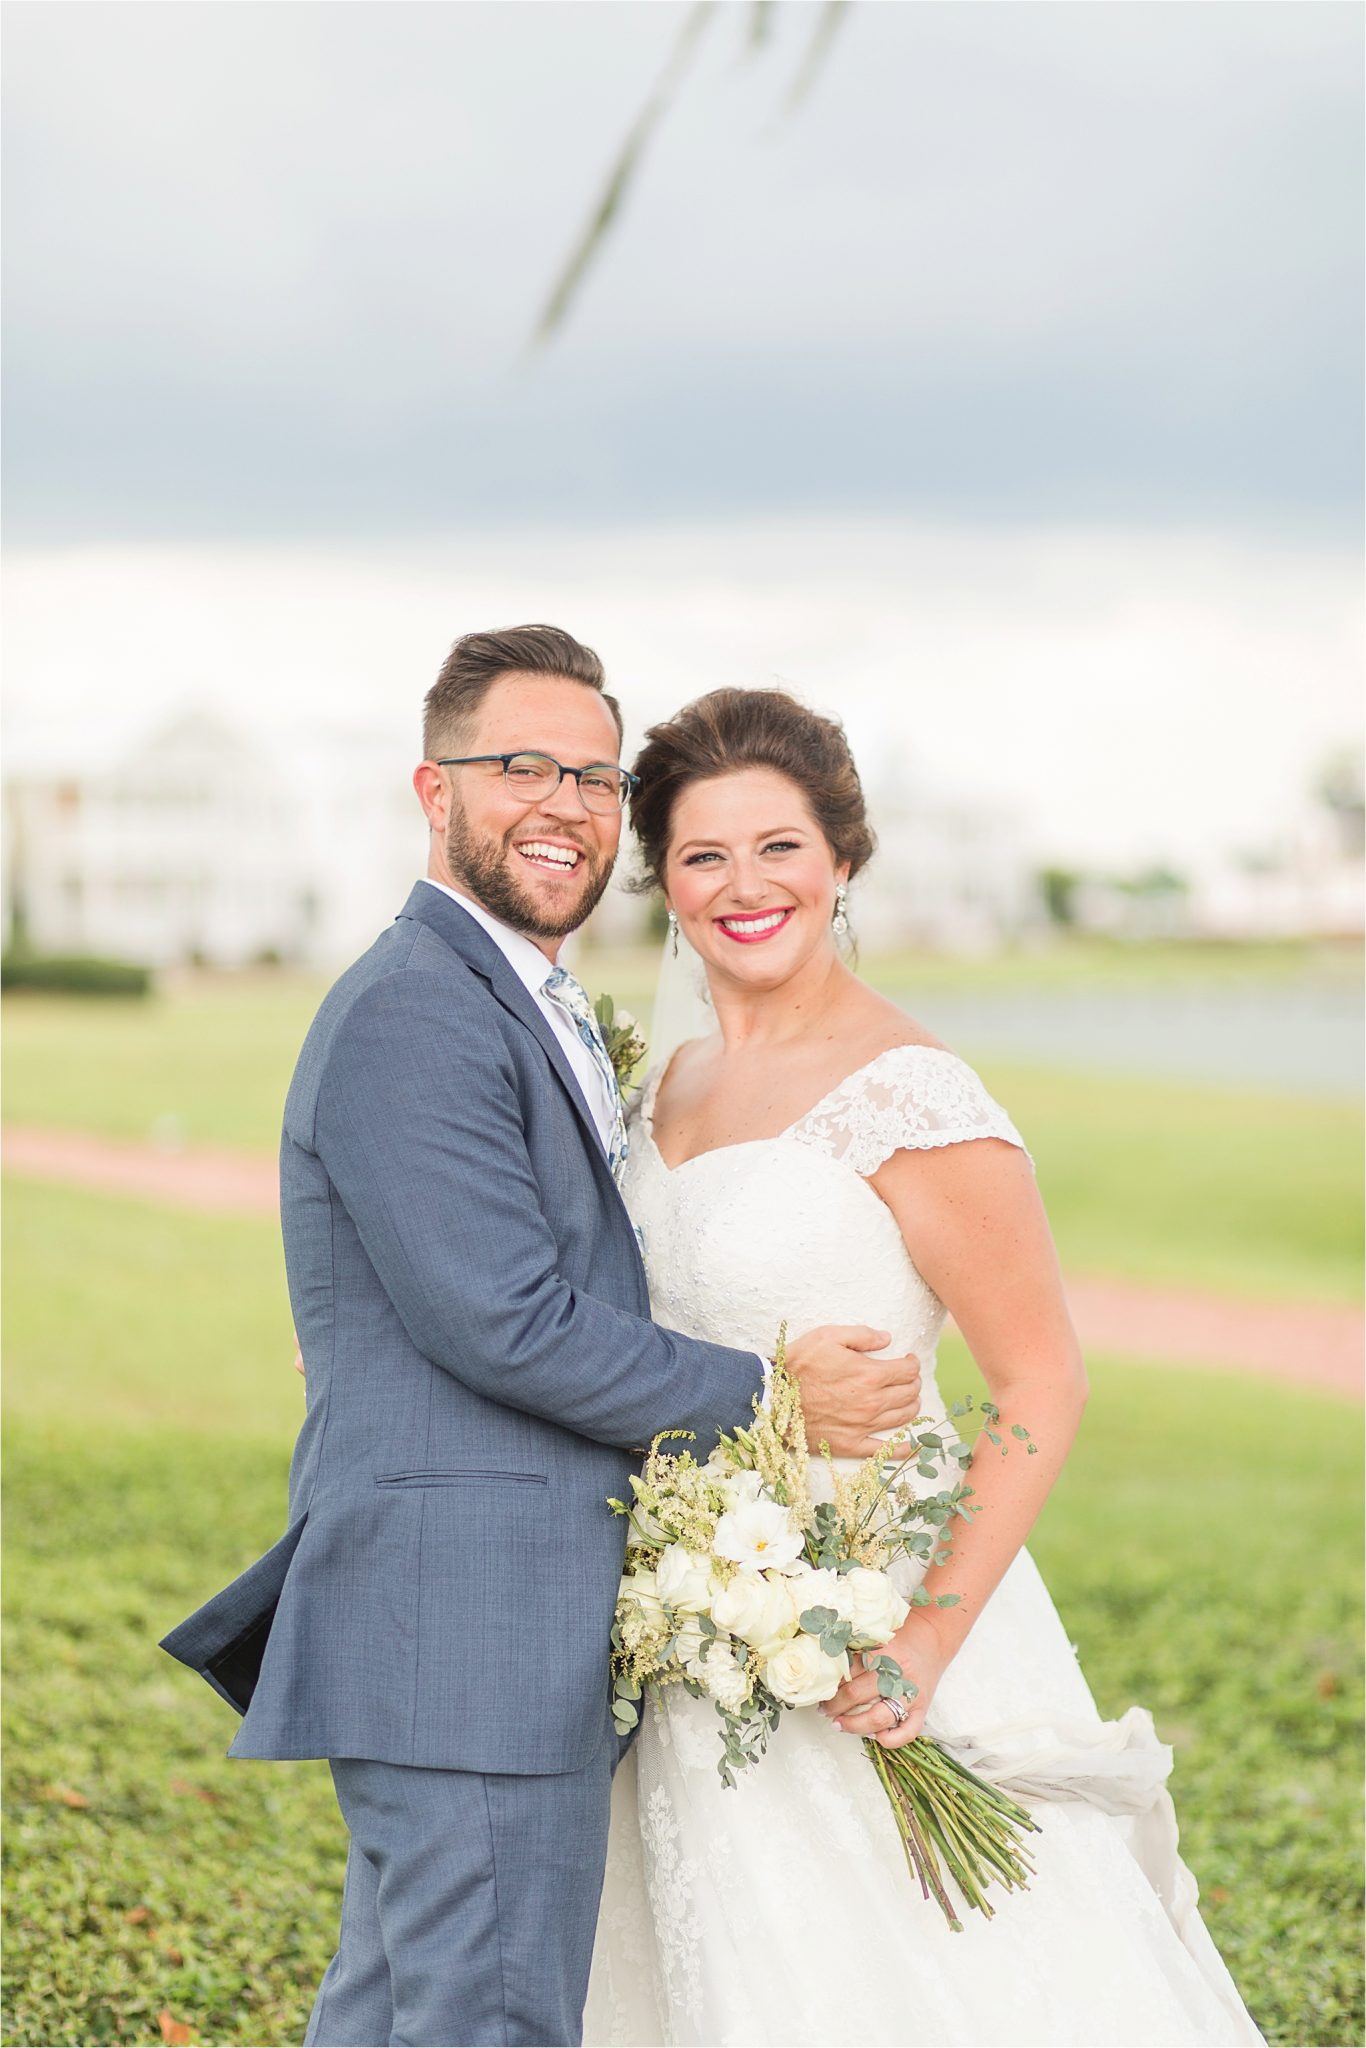 Pastel Themed Wedding-The Chapel at the Waters-Montgomery Alabama Photographer-Miles & Meredyth-Blue Themed Wedding-Bride Bouquet-Wedding Dress-Groom-Bride